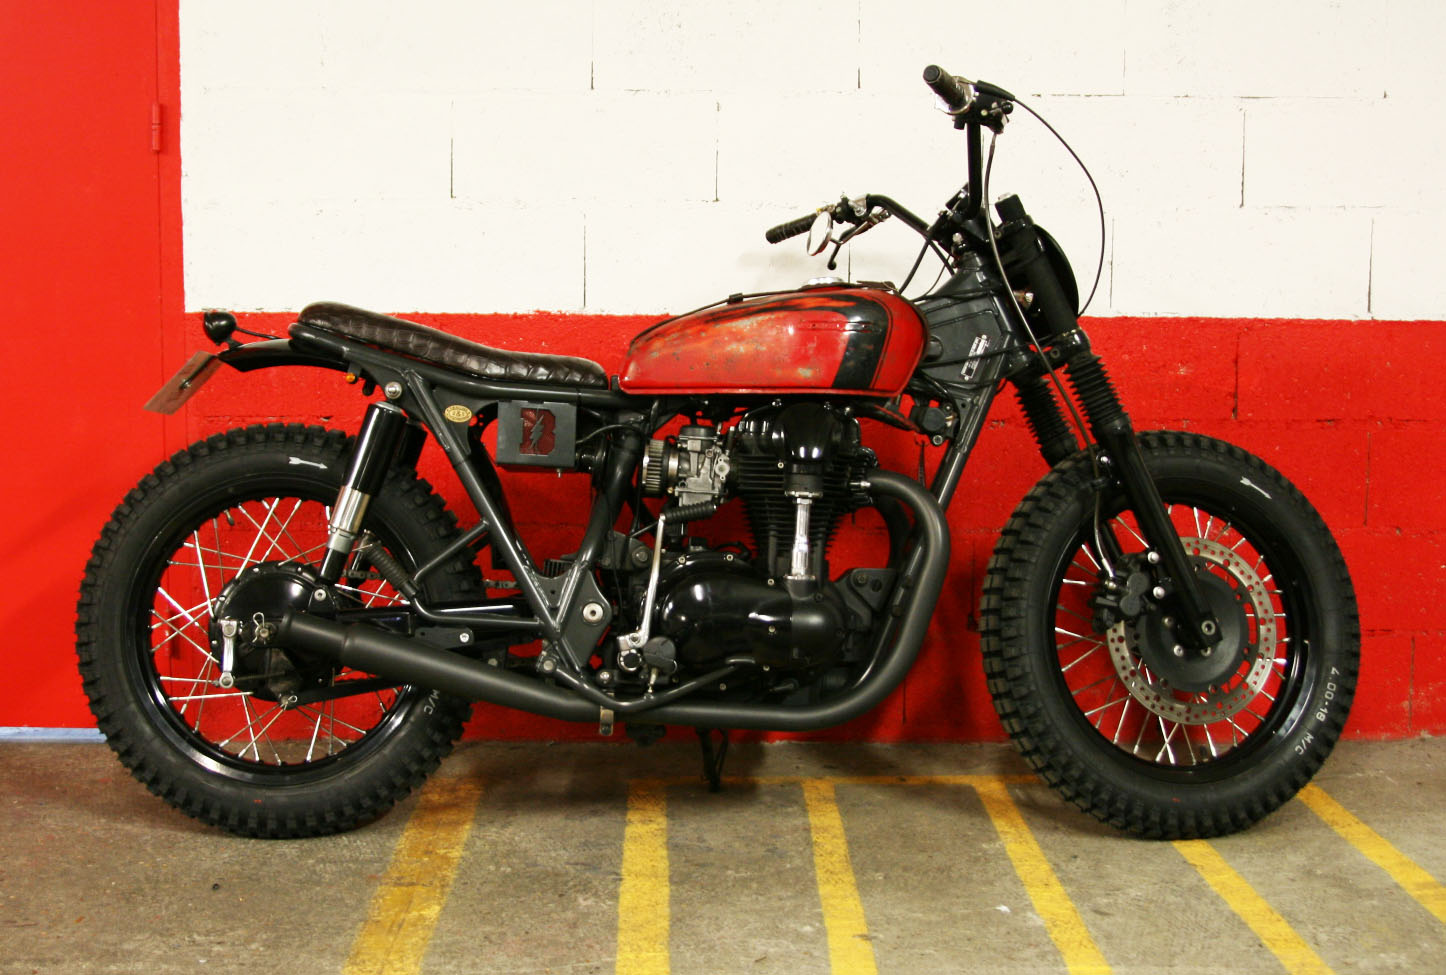 - Fully re-worked  Kawasaki W650 ;  - Frame shortened by 2 inches;  - bespoke battery box welded under the seat.